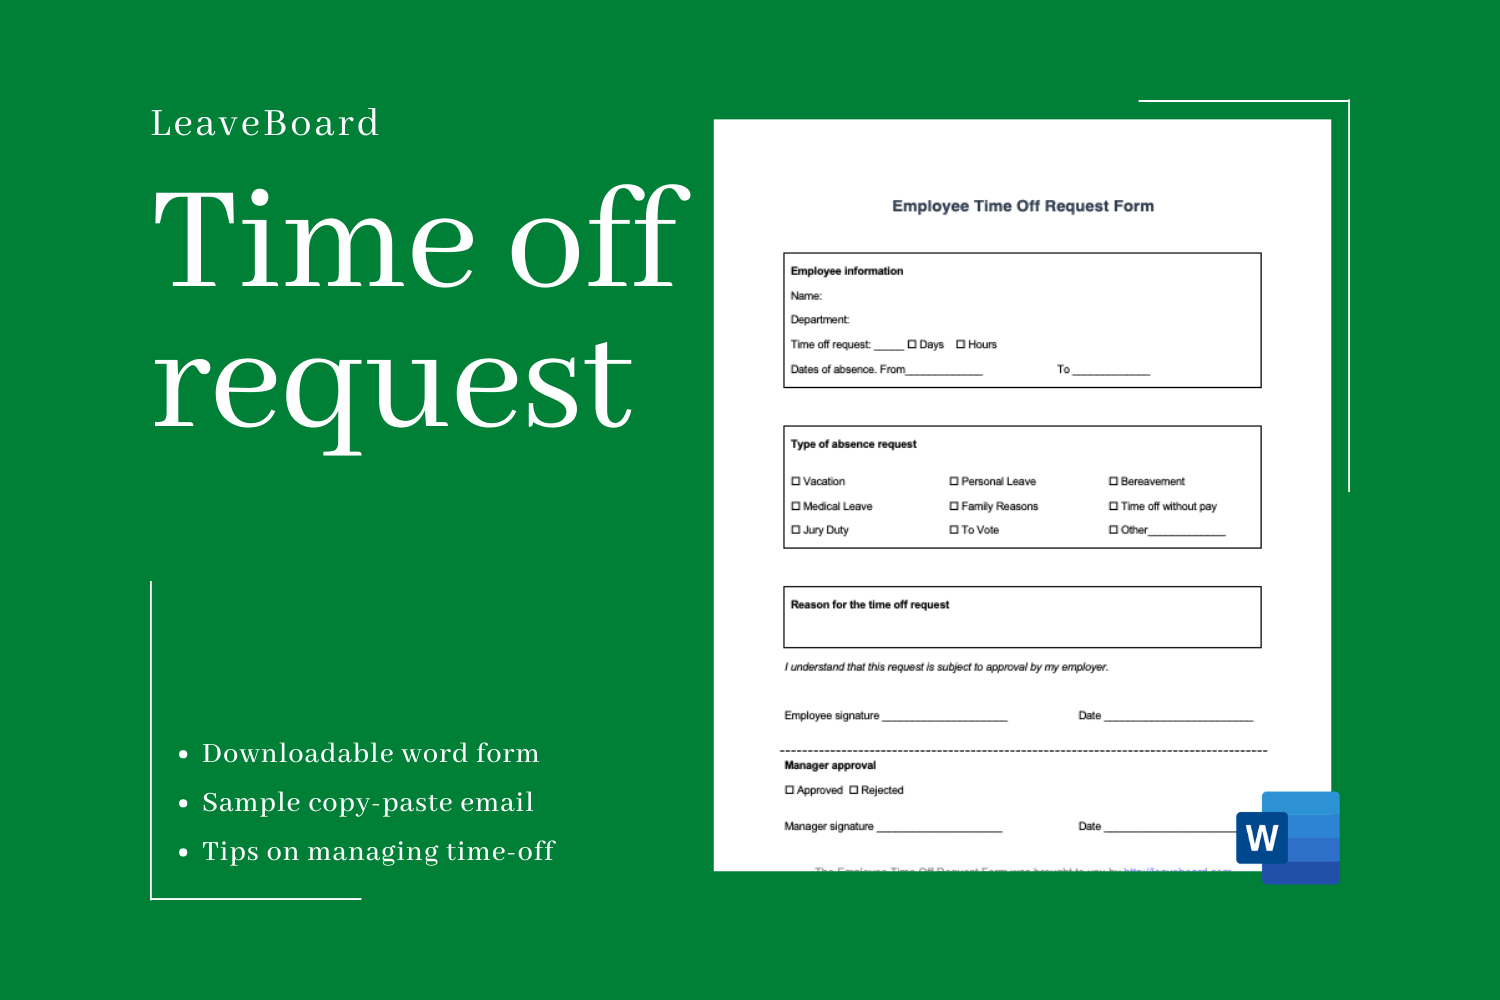 Time Off Request   PTO Request Form Template   Leave Board